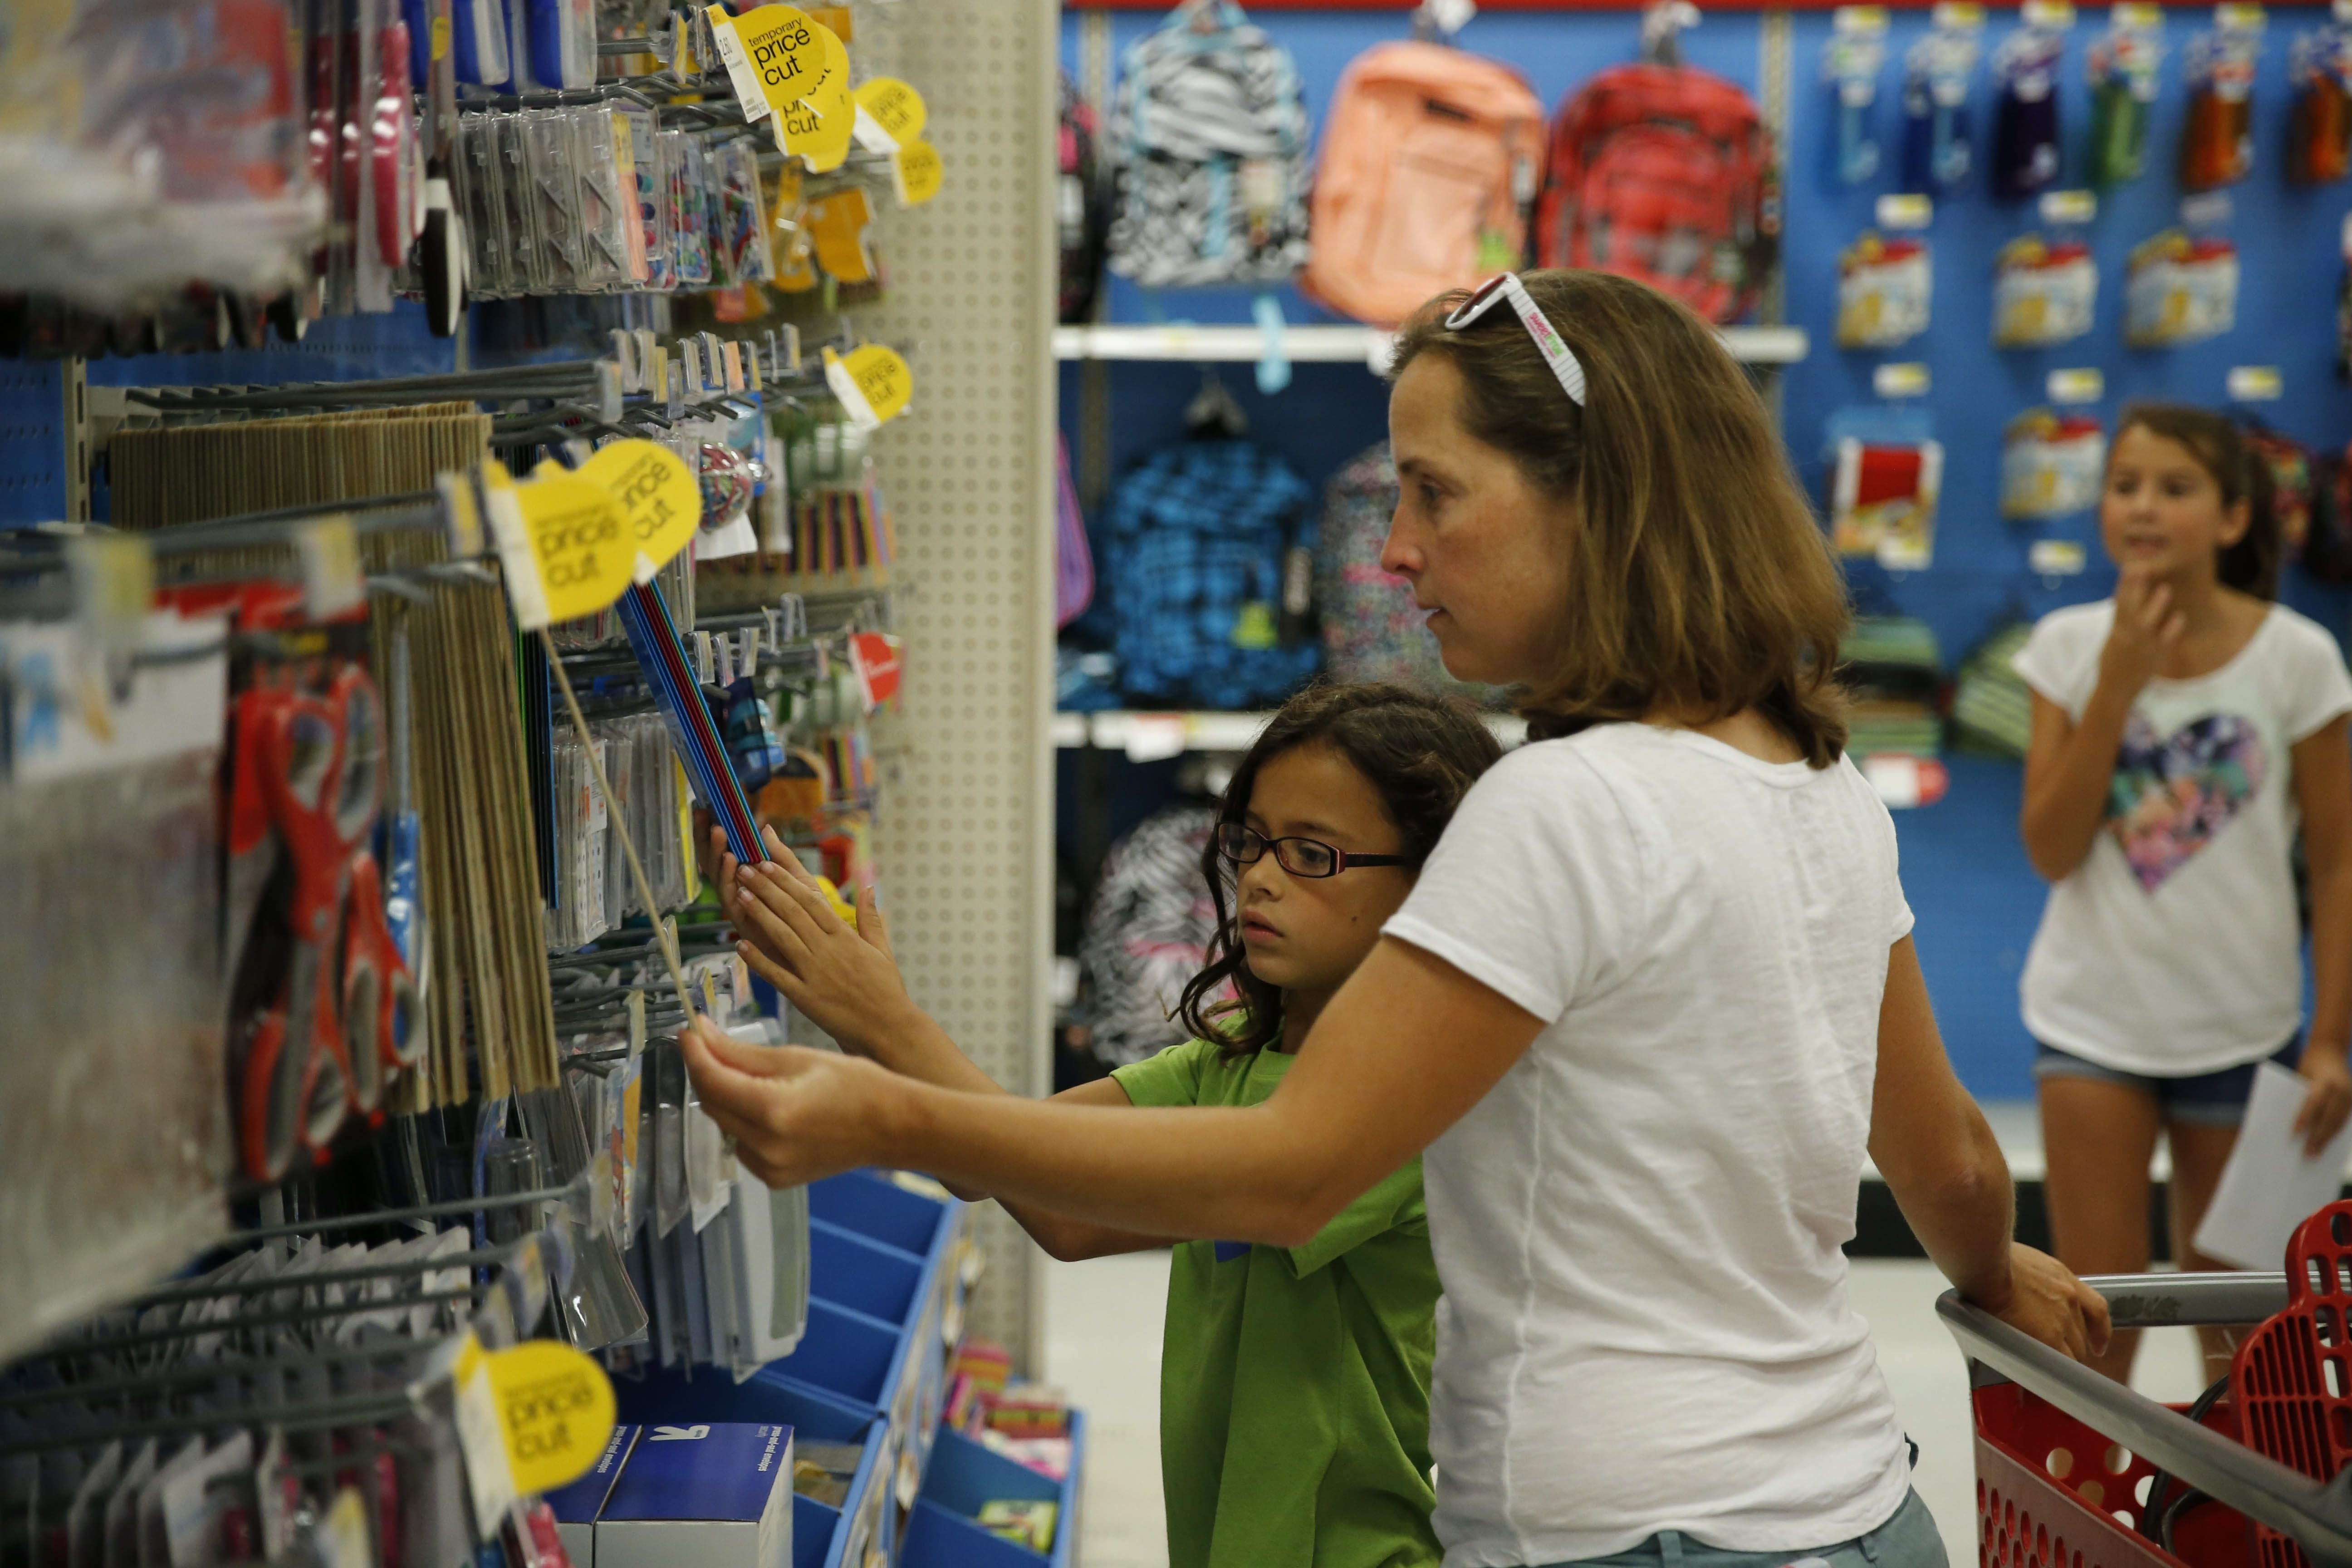 Alex Passarell, of Orchard Park, helps her daughter Charlotte, 8, pick out a ruler as they do back-to-school shopping at Target in Depew on Thursday.